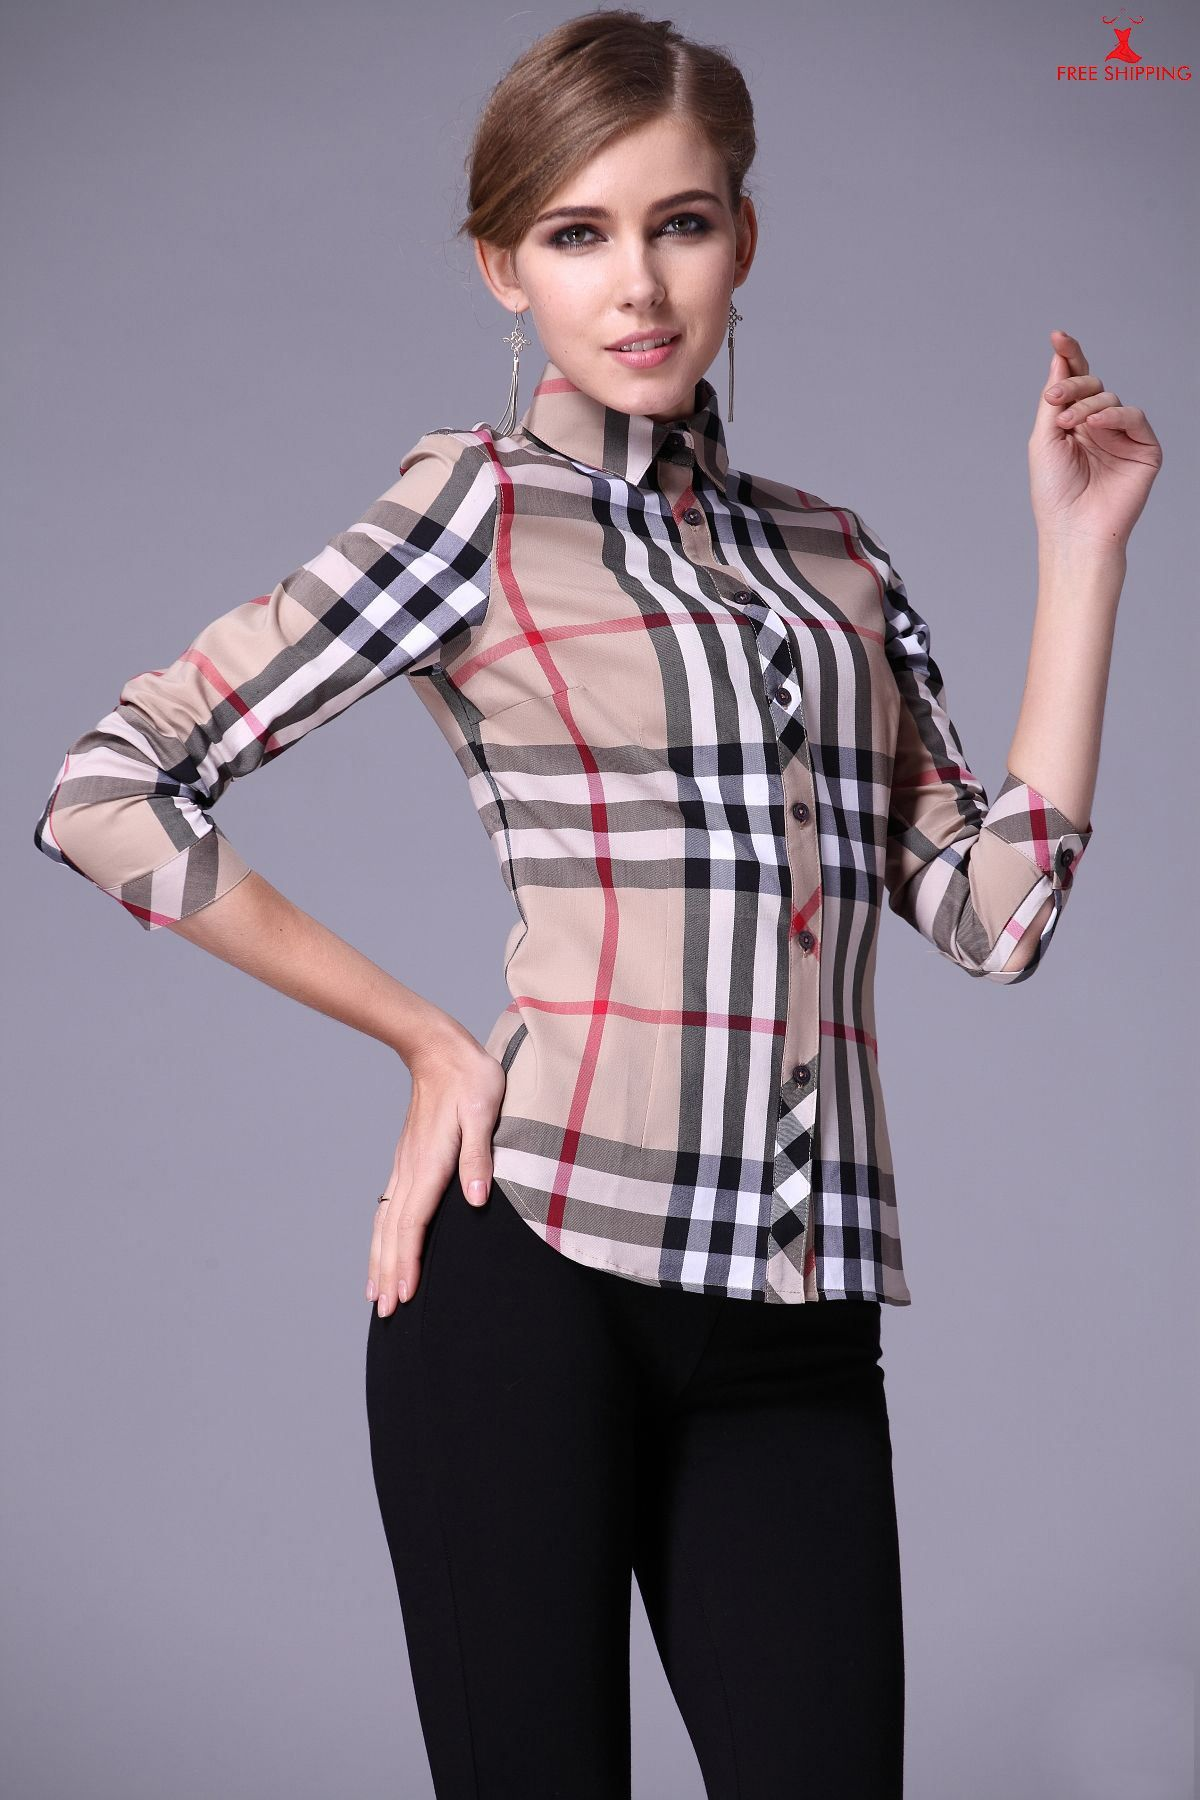 authentic burberry bags outlet online f9sf  womens burberry plaid shirt